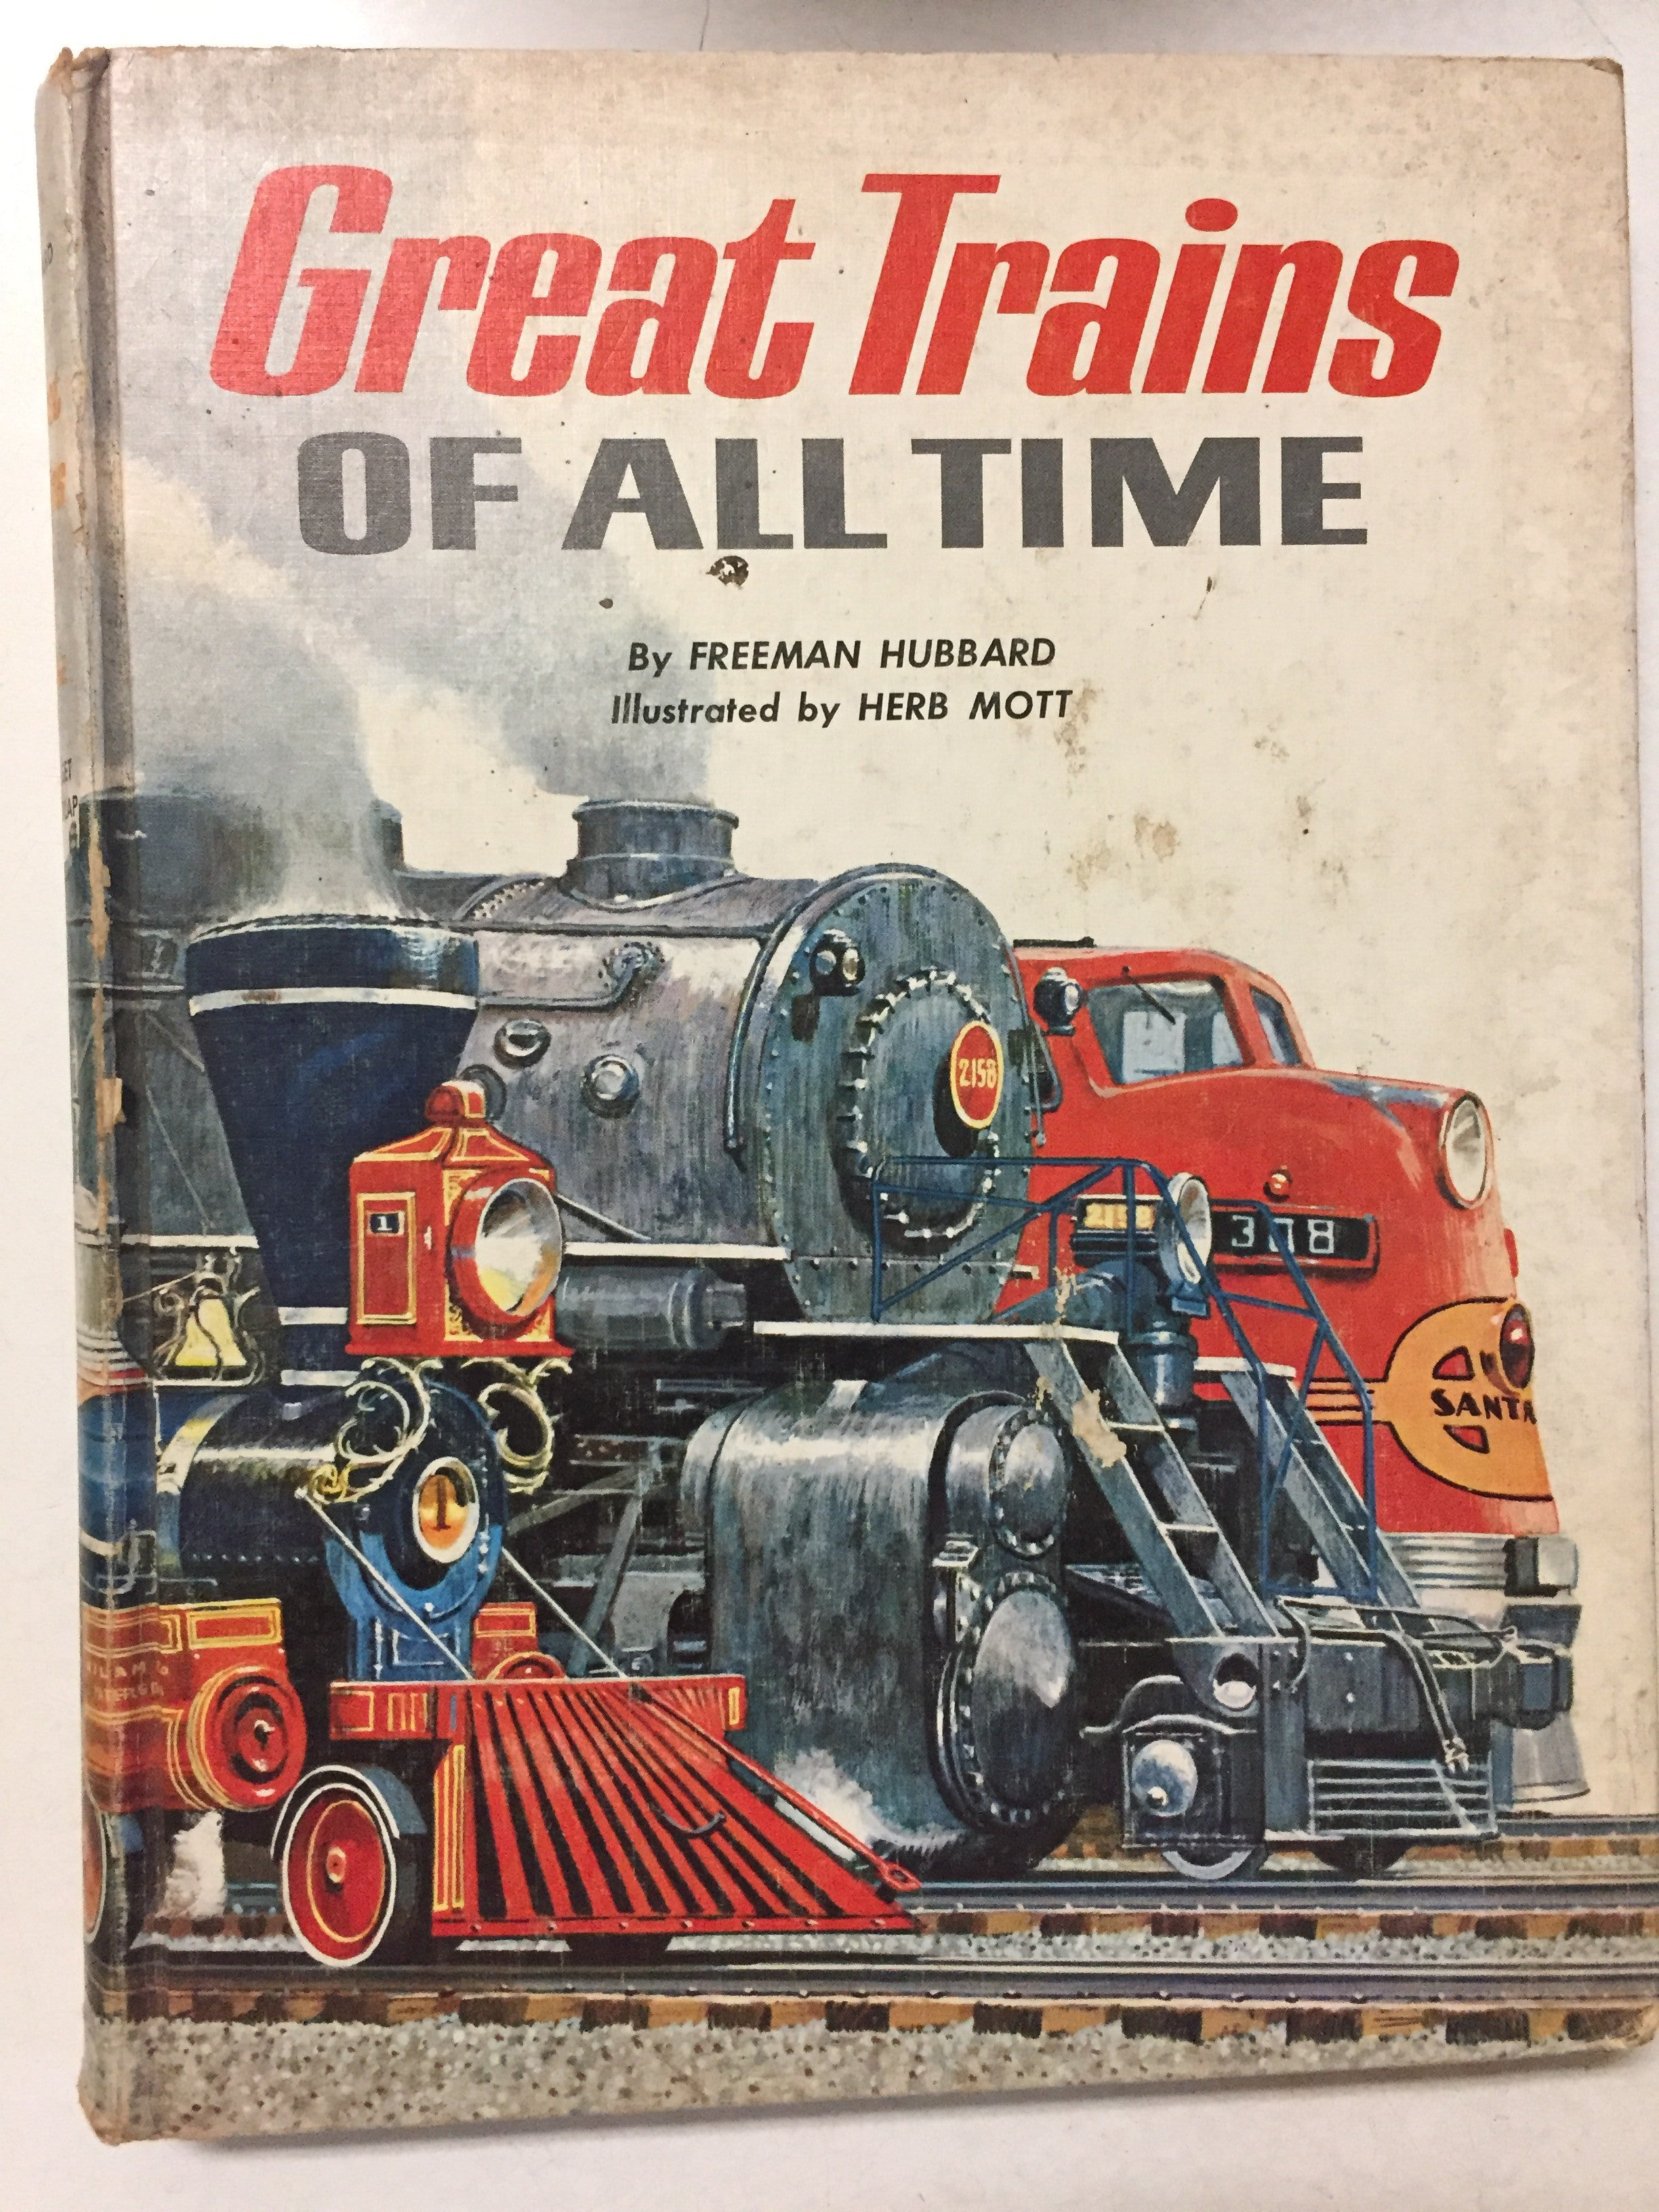 Great Trains of All Time - Slickcatbooks